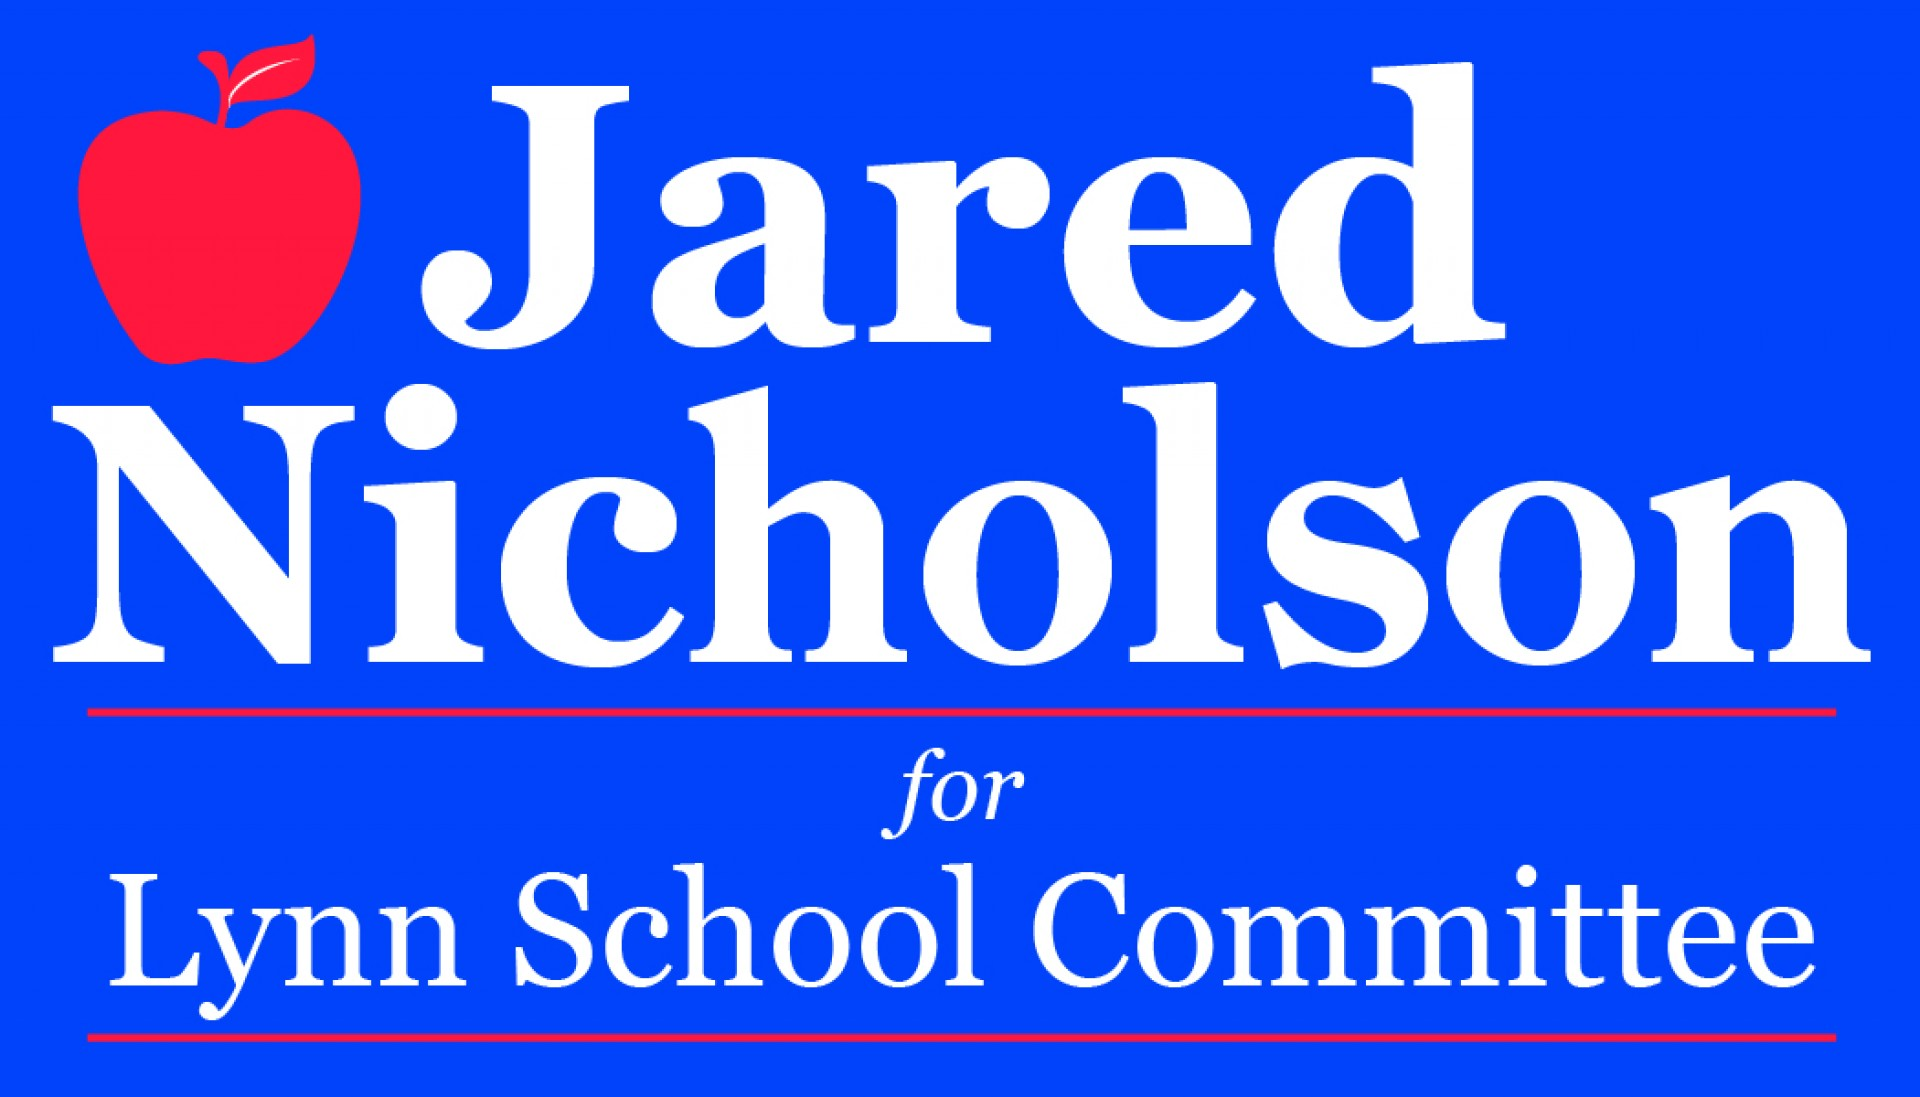 Jared Nicholson for Lynn School Committee